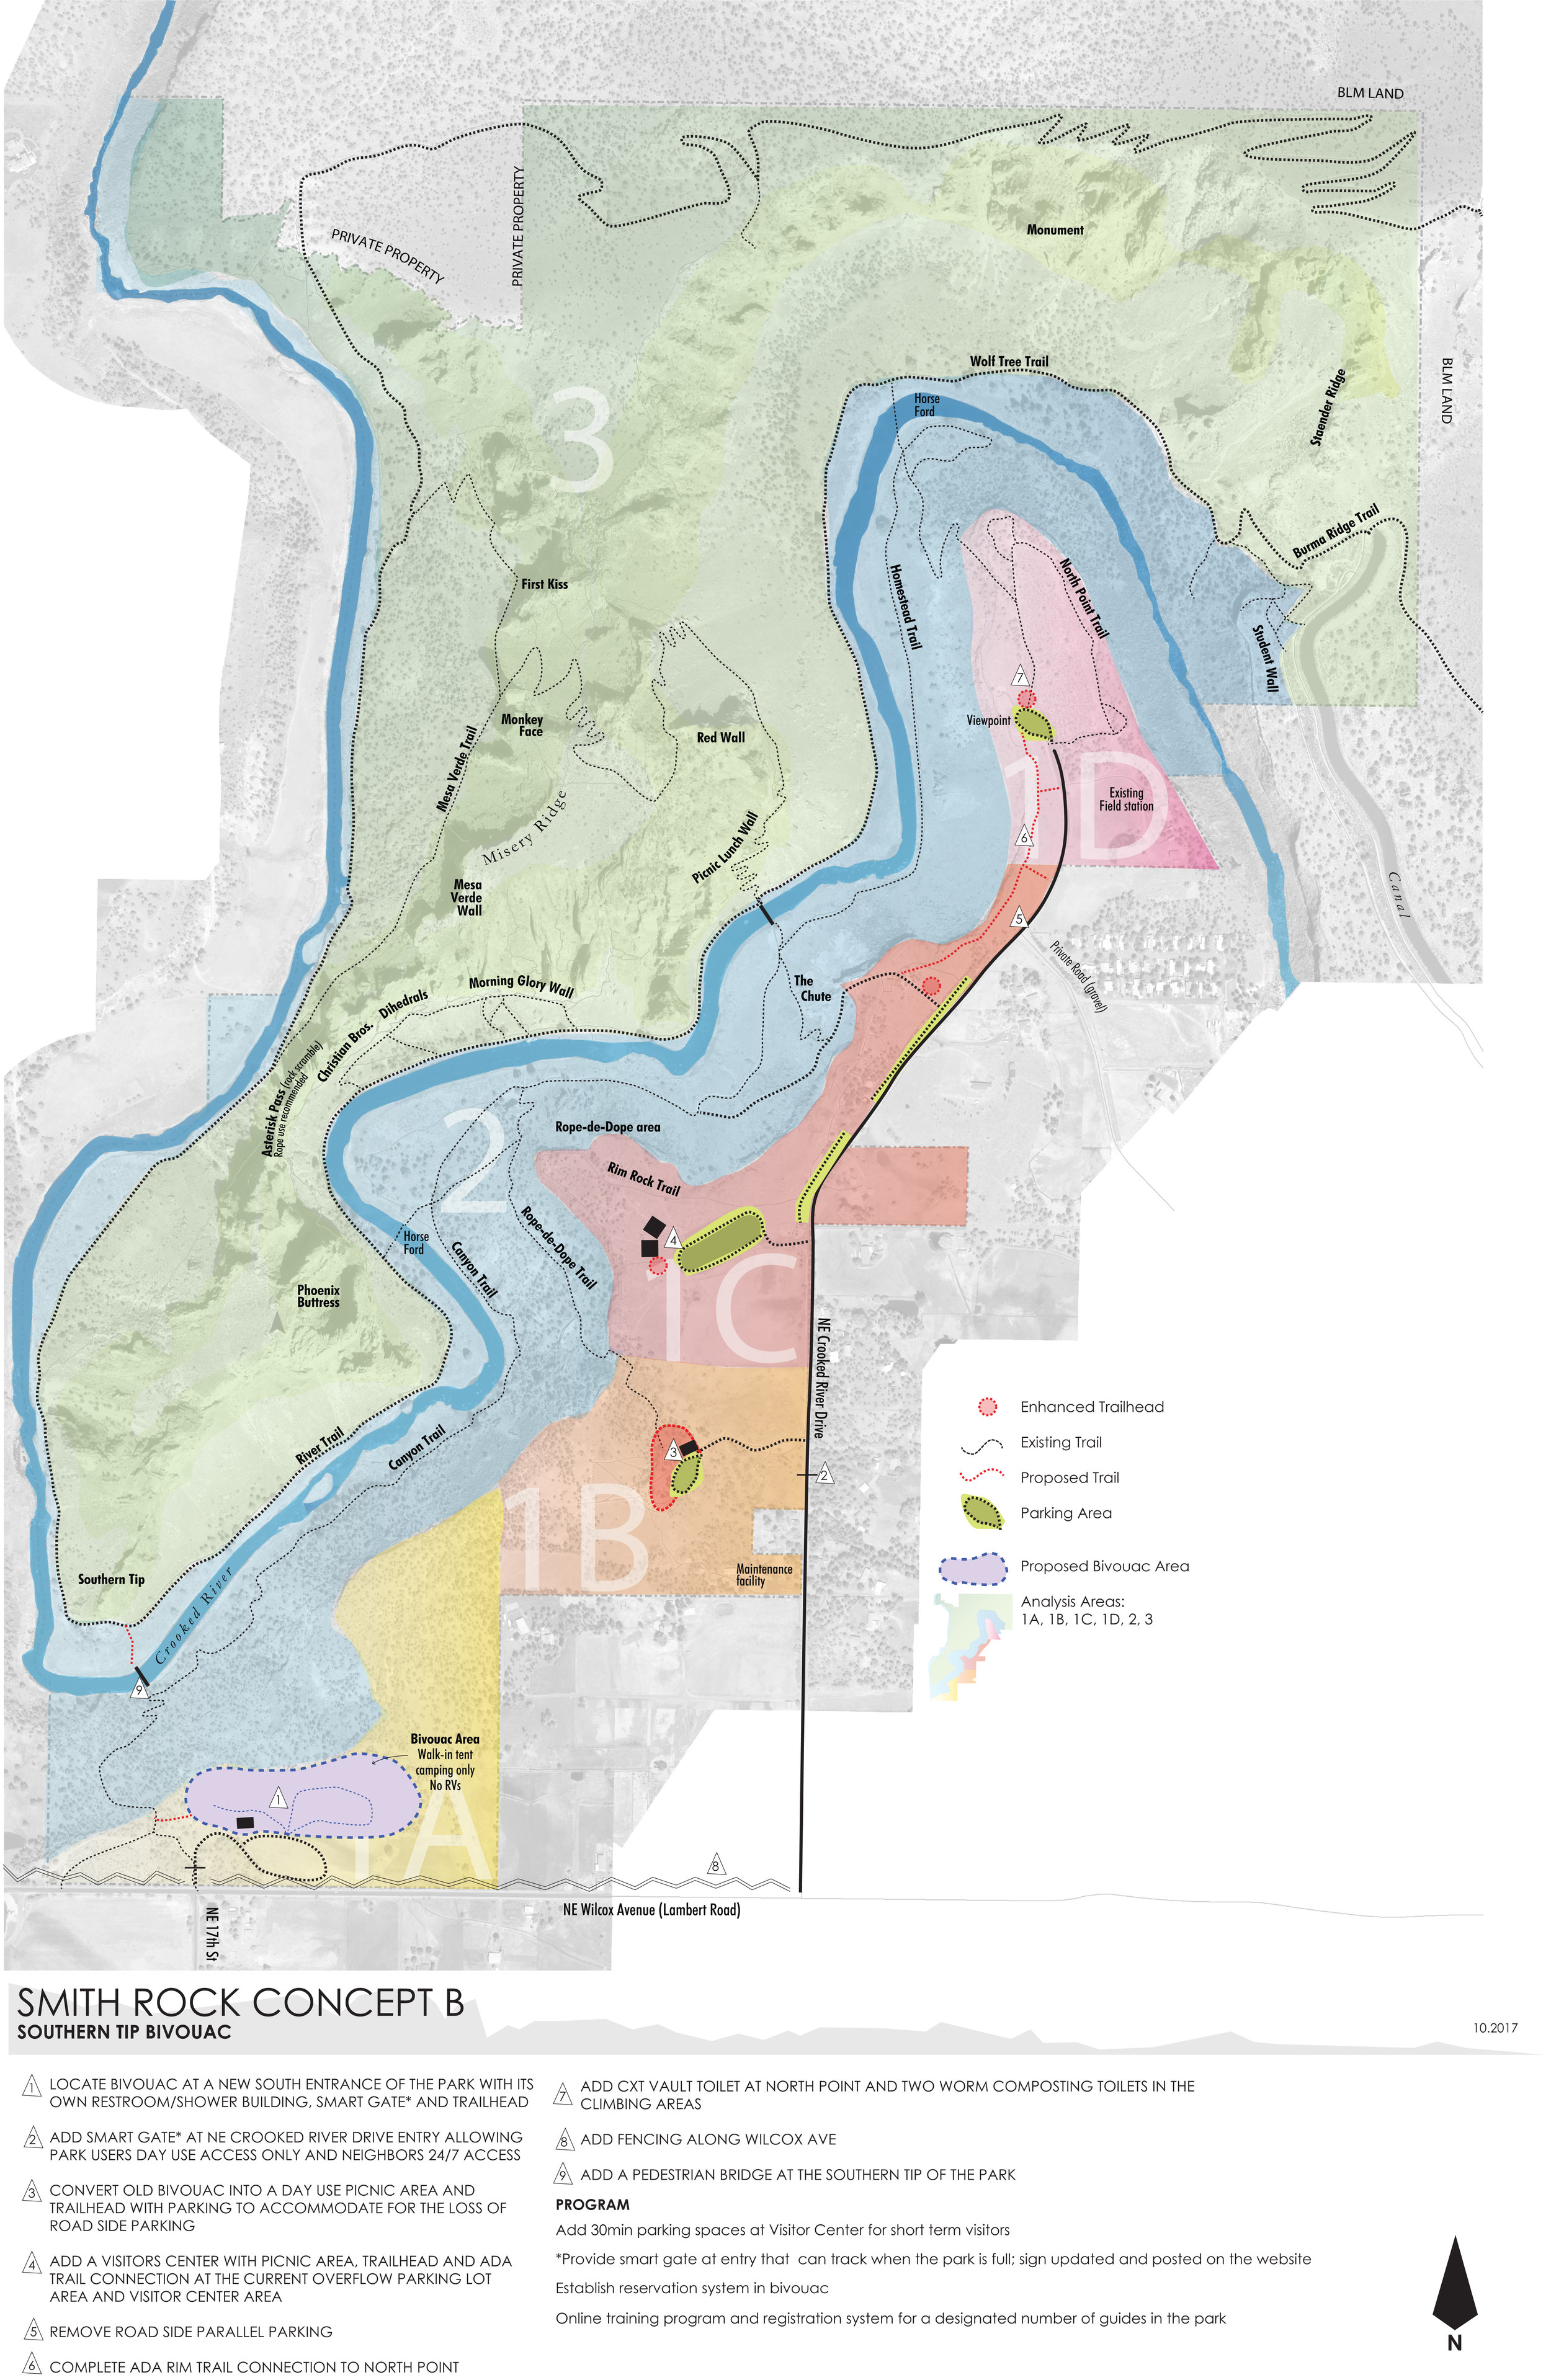 Smith Rock Master Plan Concept B—click to enlarge